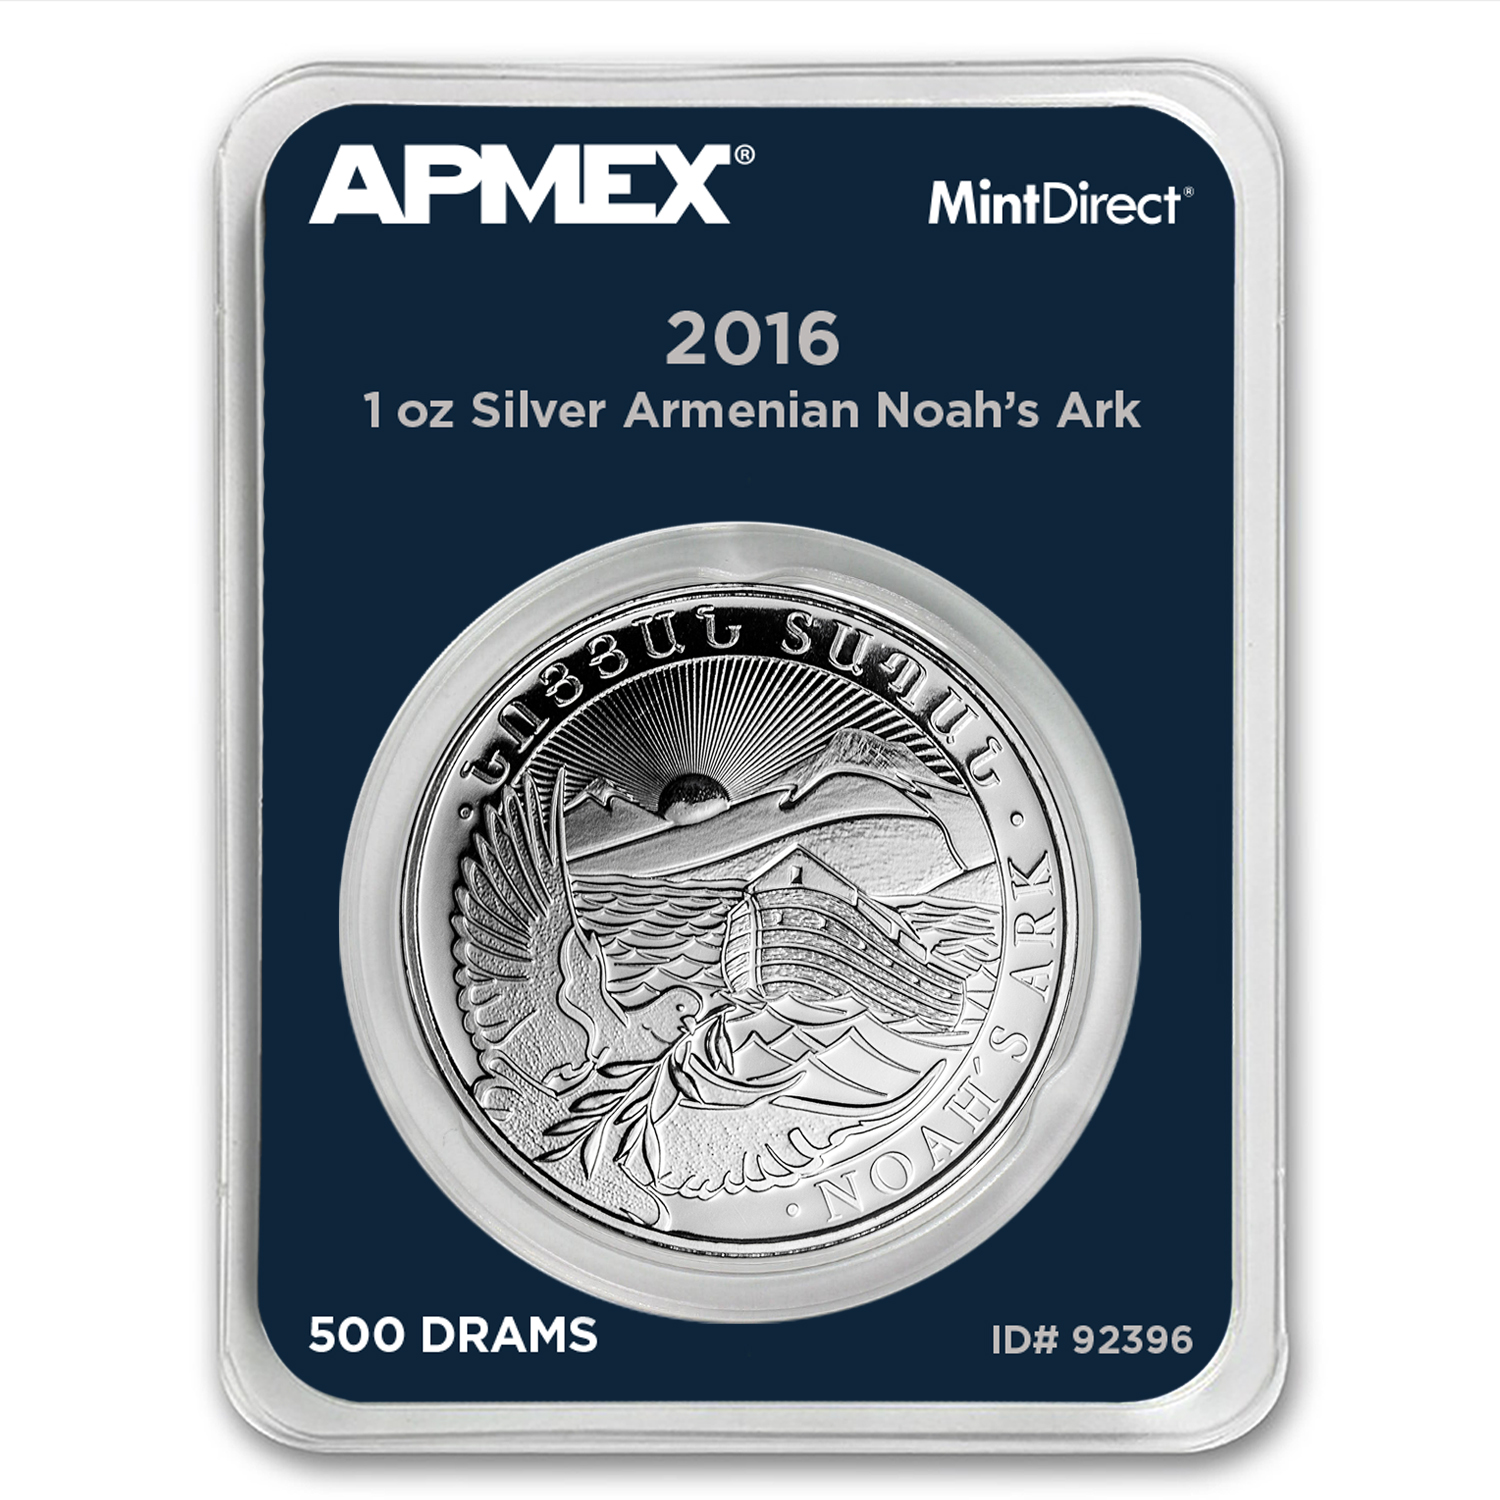 2016 Armenia 1 oz Silver Noah's Ark (MintDirect® Single)